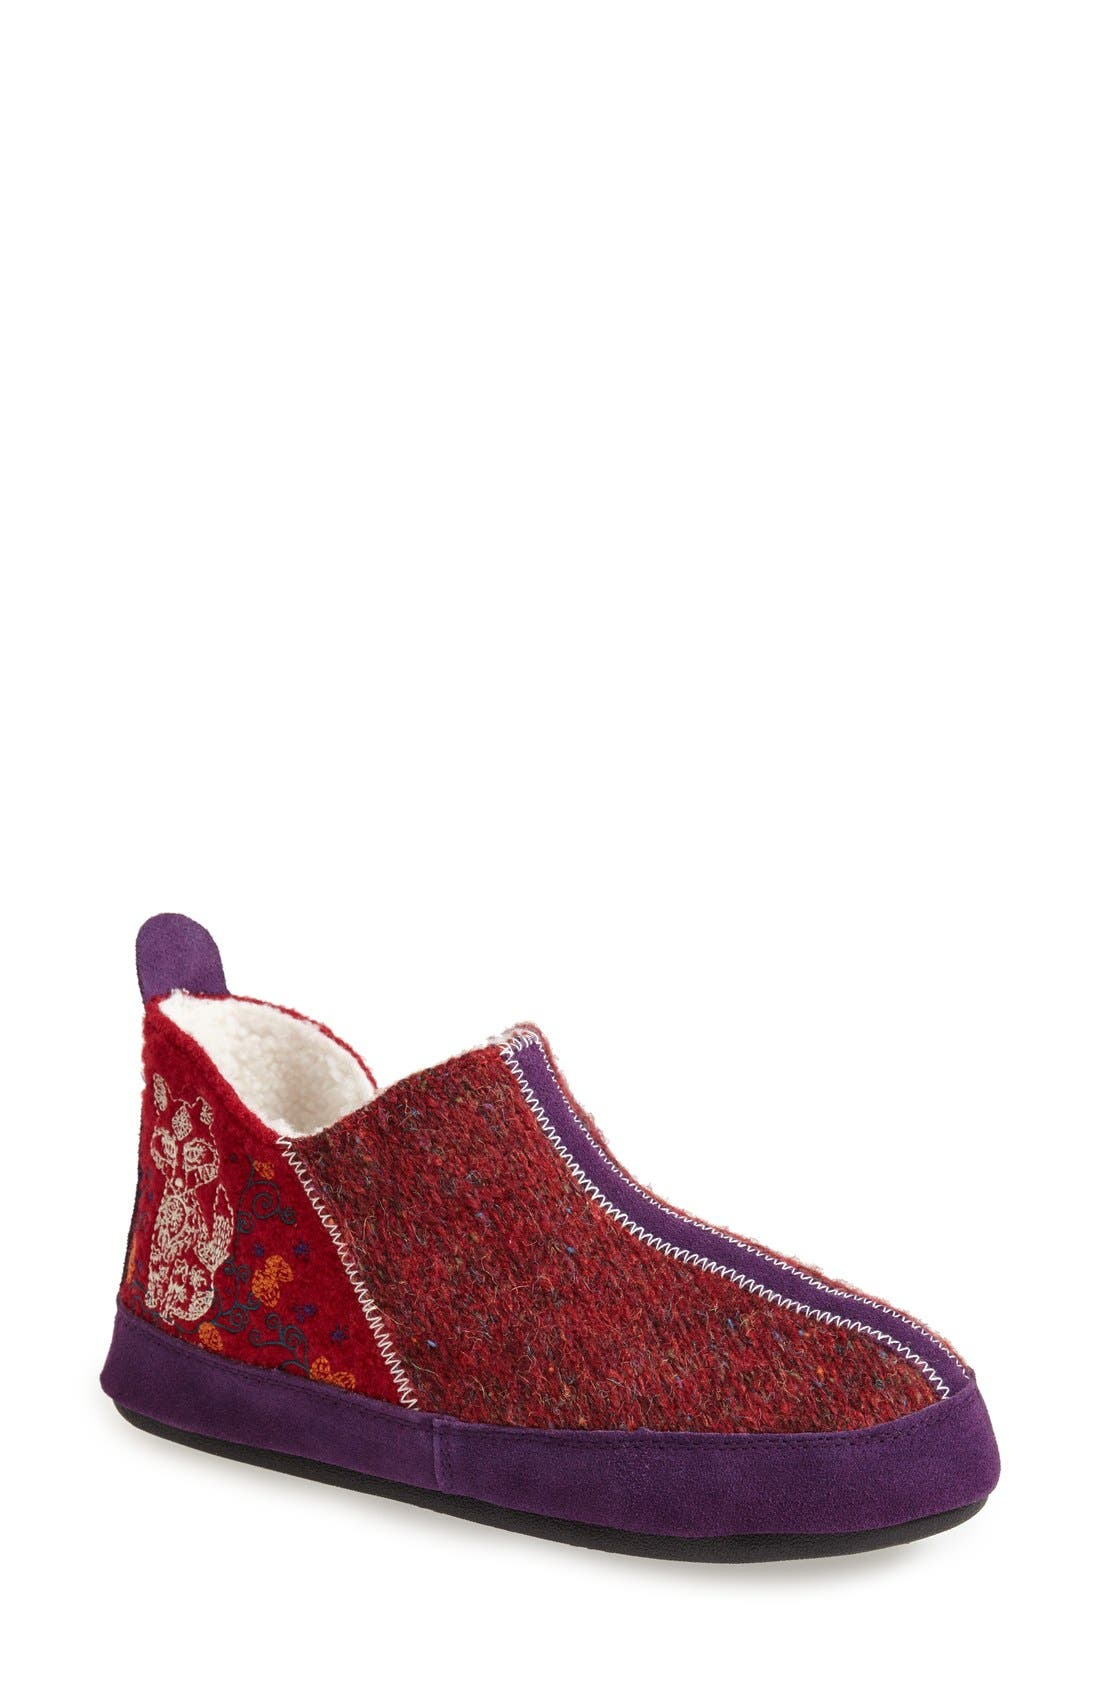 'Forest' Bootie Slipper,                             Main thumbnail 4, color,